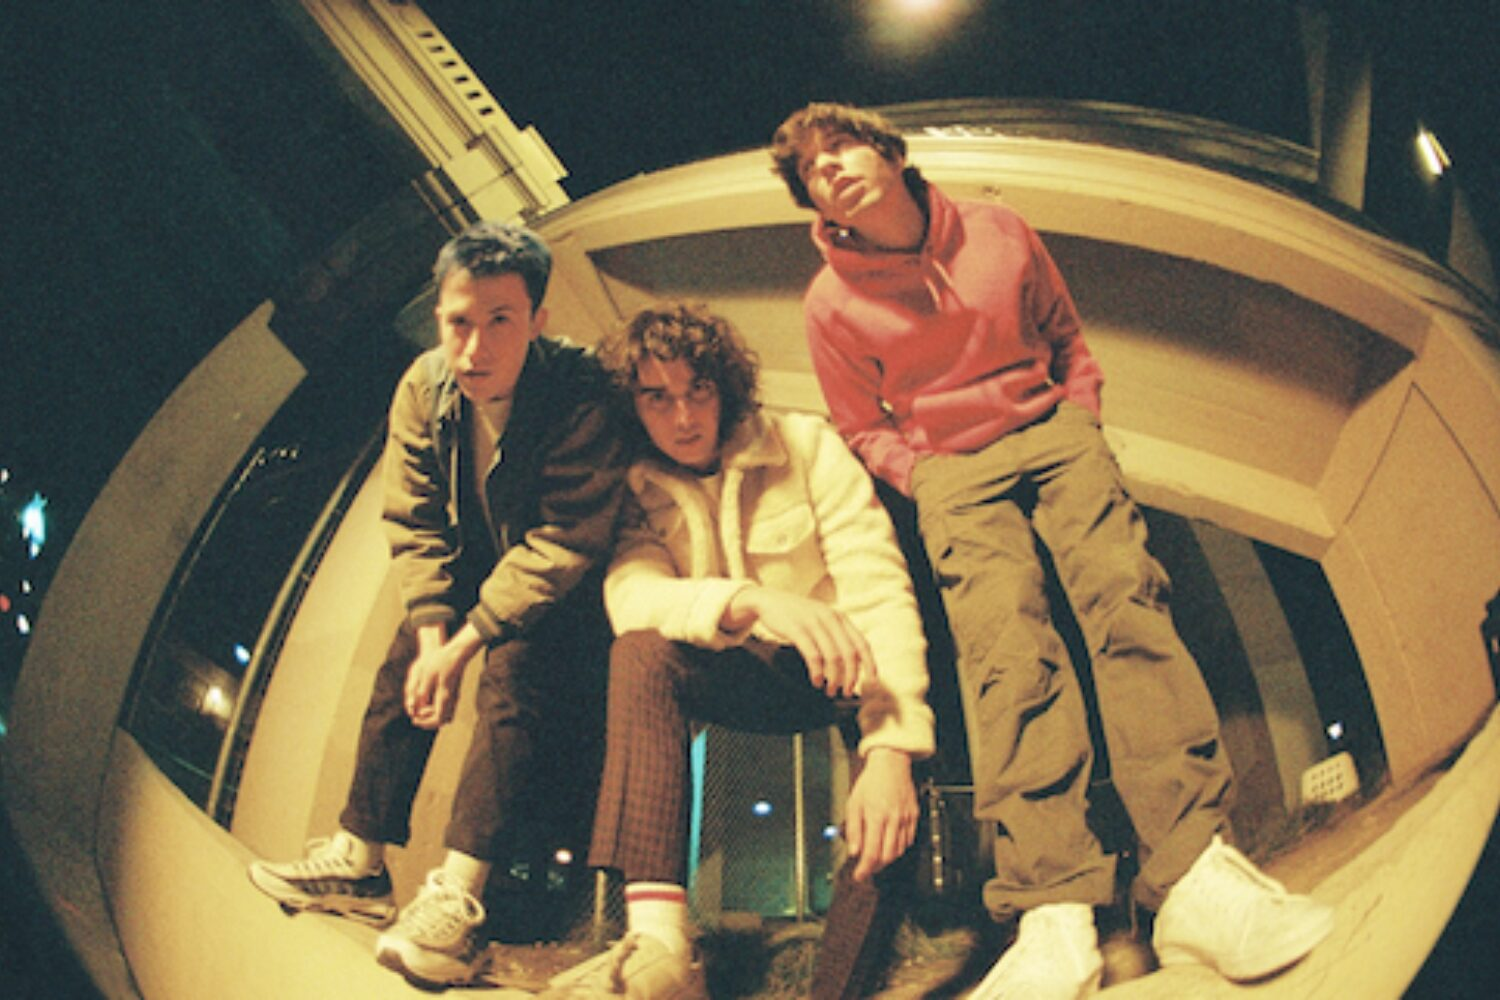 Wallows share 90s-inspired 'OK' video